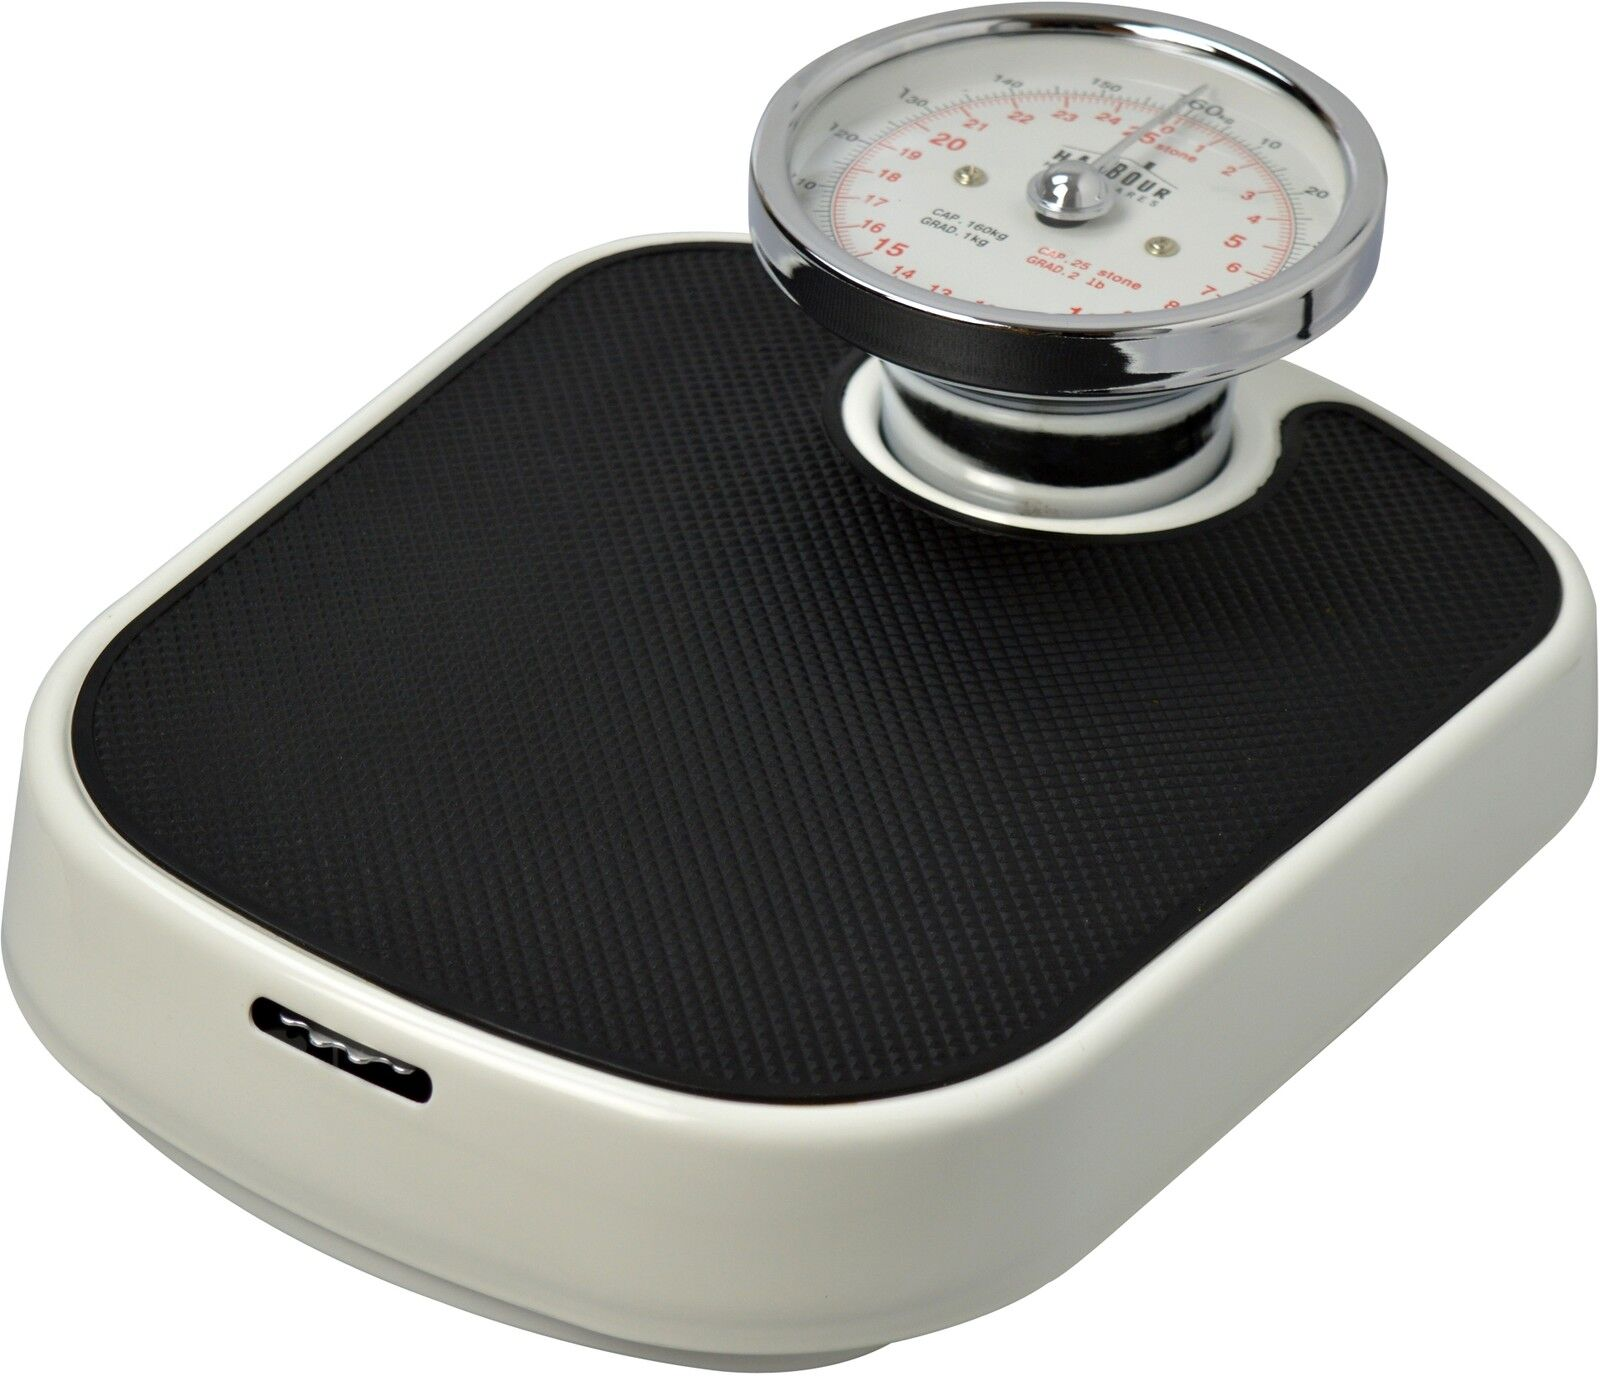 Traditional White Mechanical Bathroom Weighing Scales